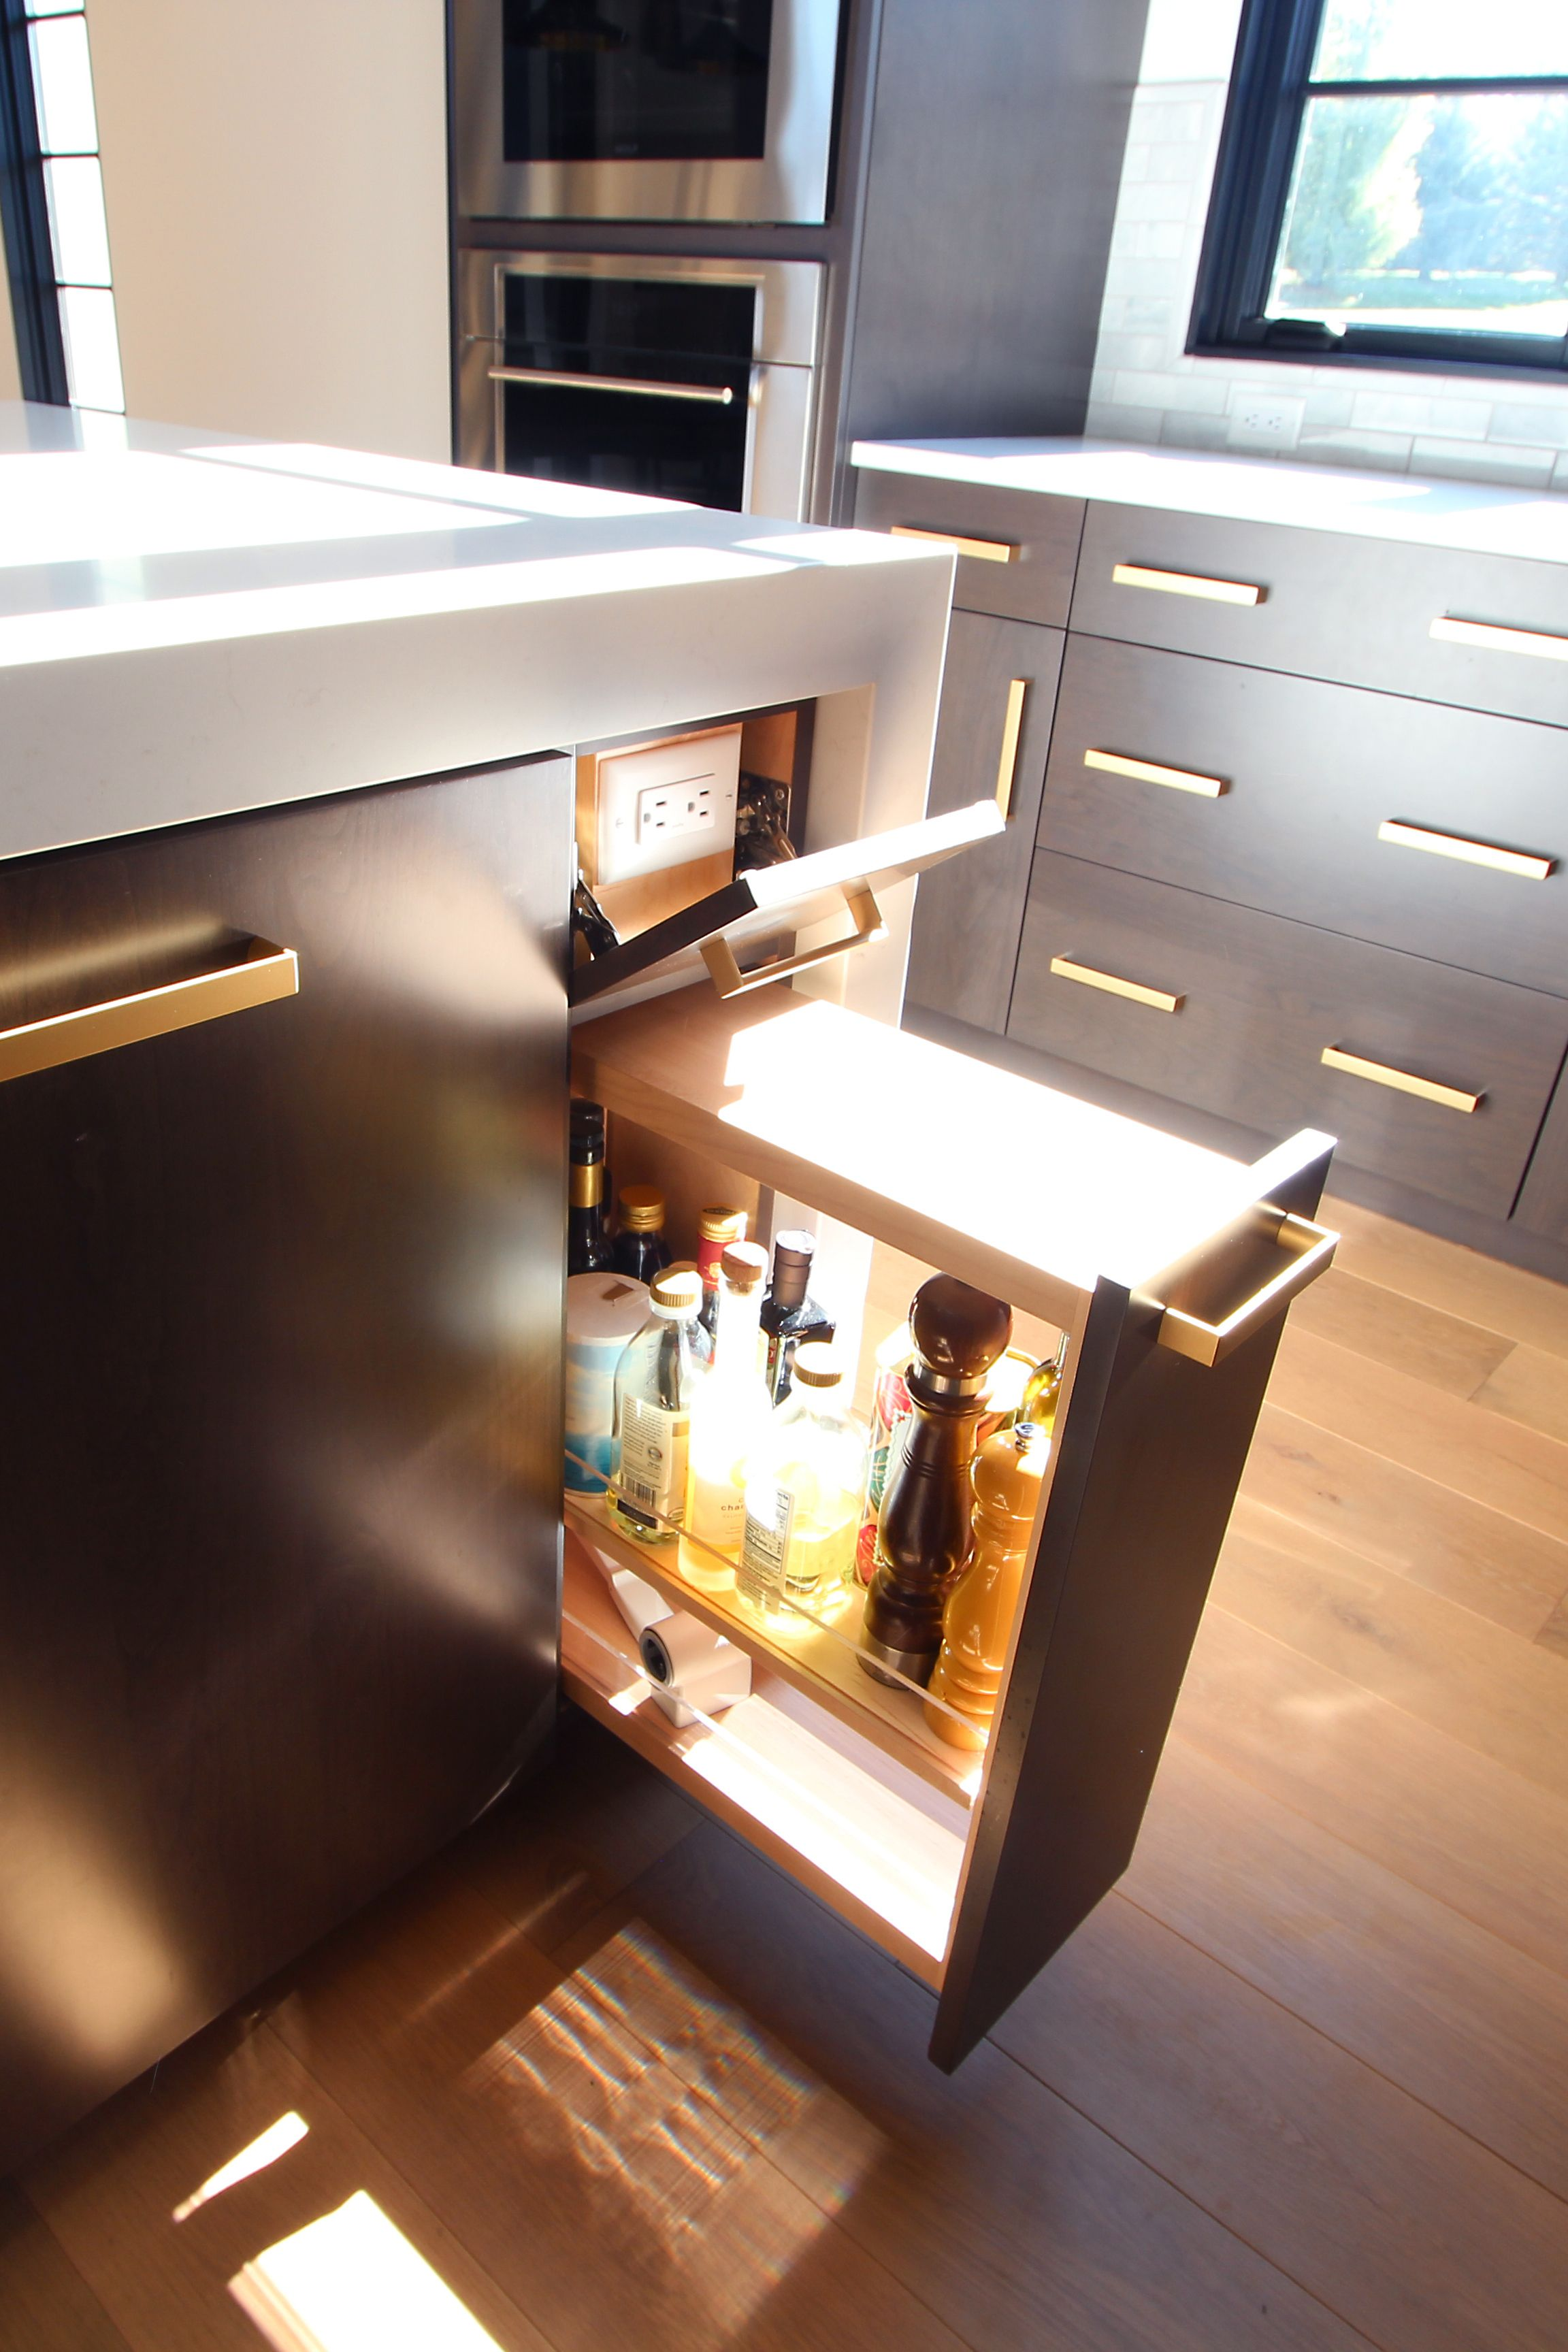 Scandinavian Kitchen Oil Pullout And Hidden Outlet Scandinavian Kitchen Interior Design Firms Kitchen And Bath Design